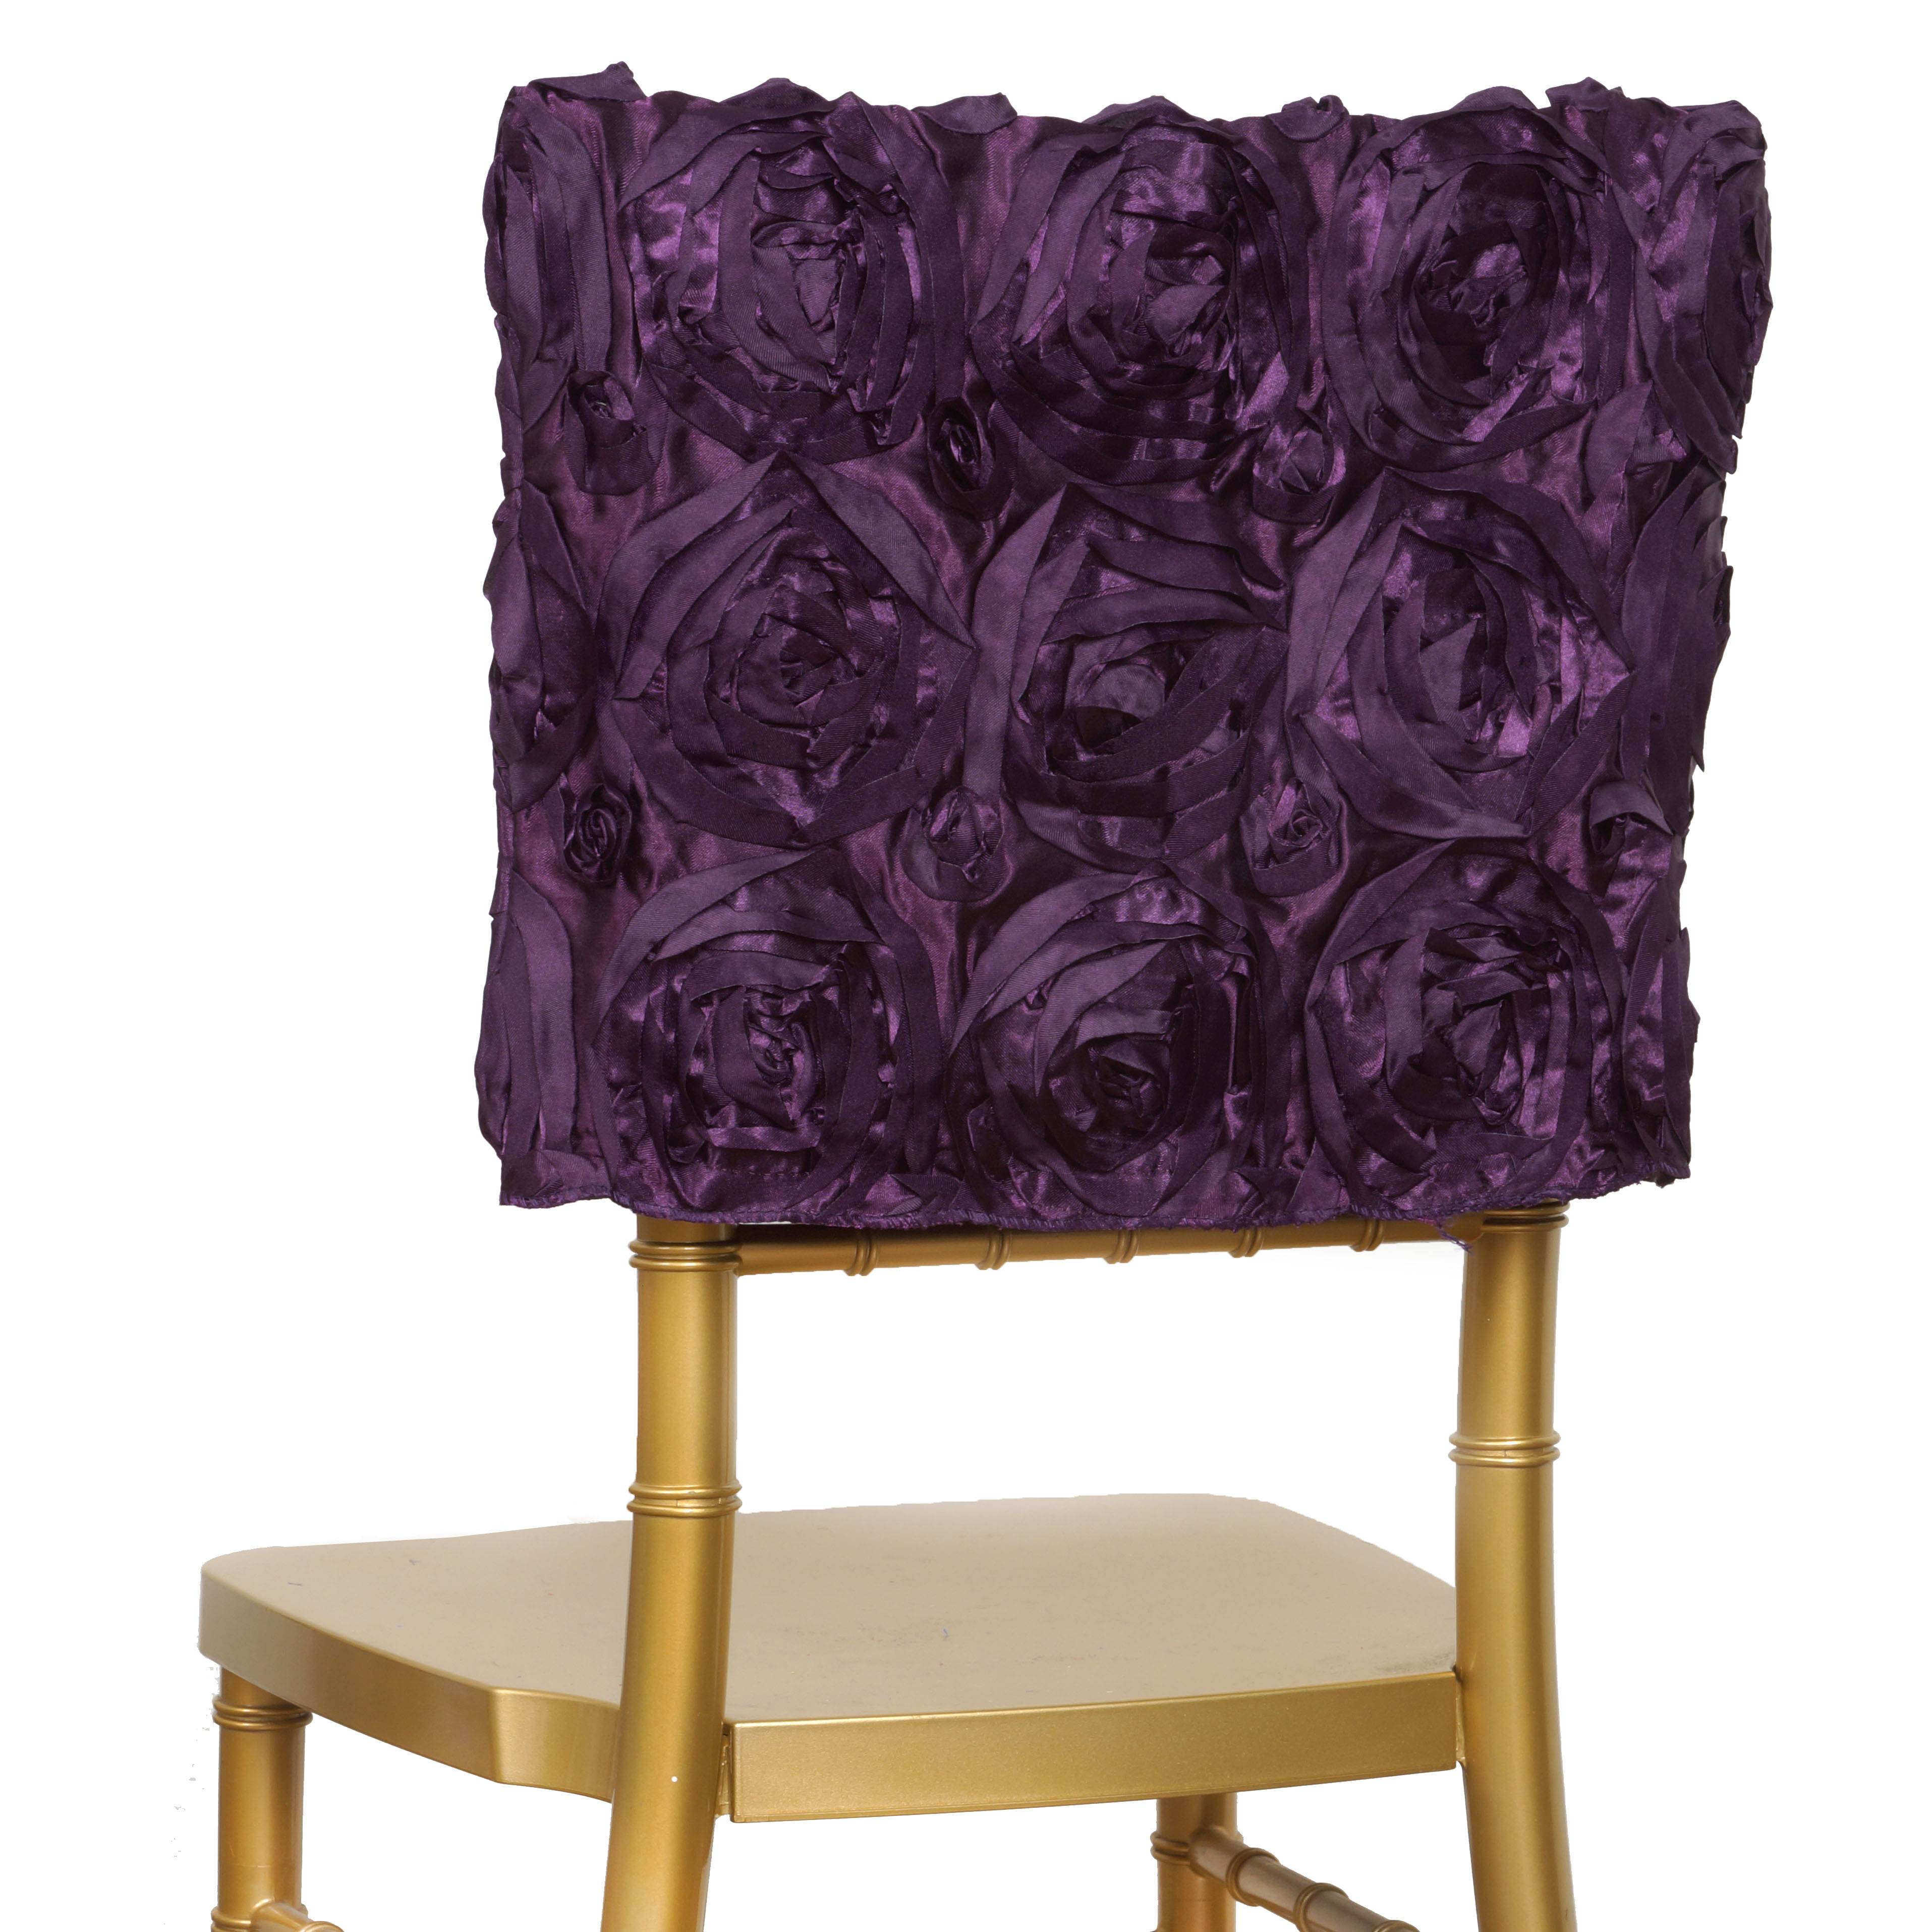 cheap chair cover decorations covers for weddings 100 pcs satin ribbon roses square cap wedding